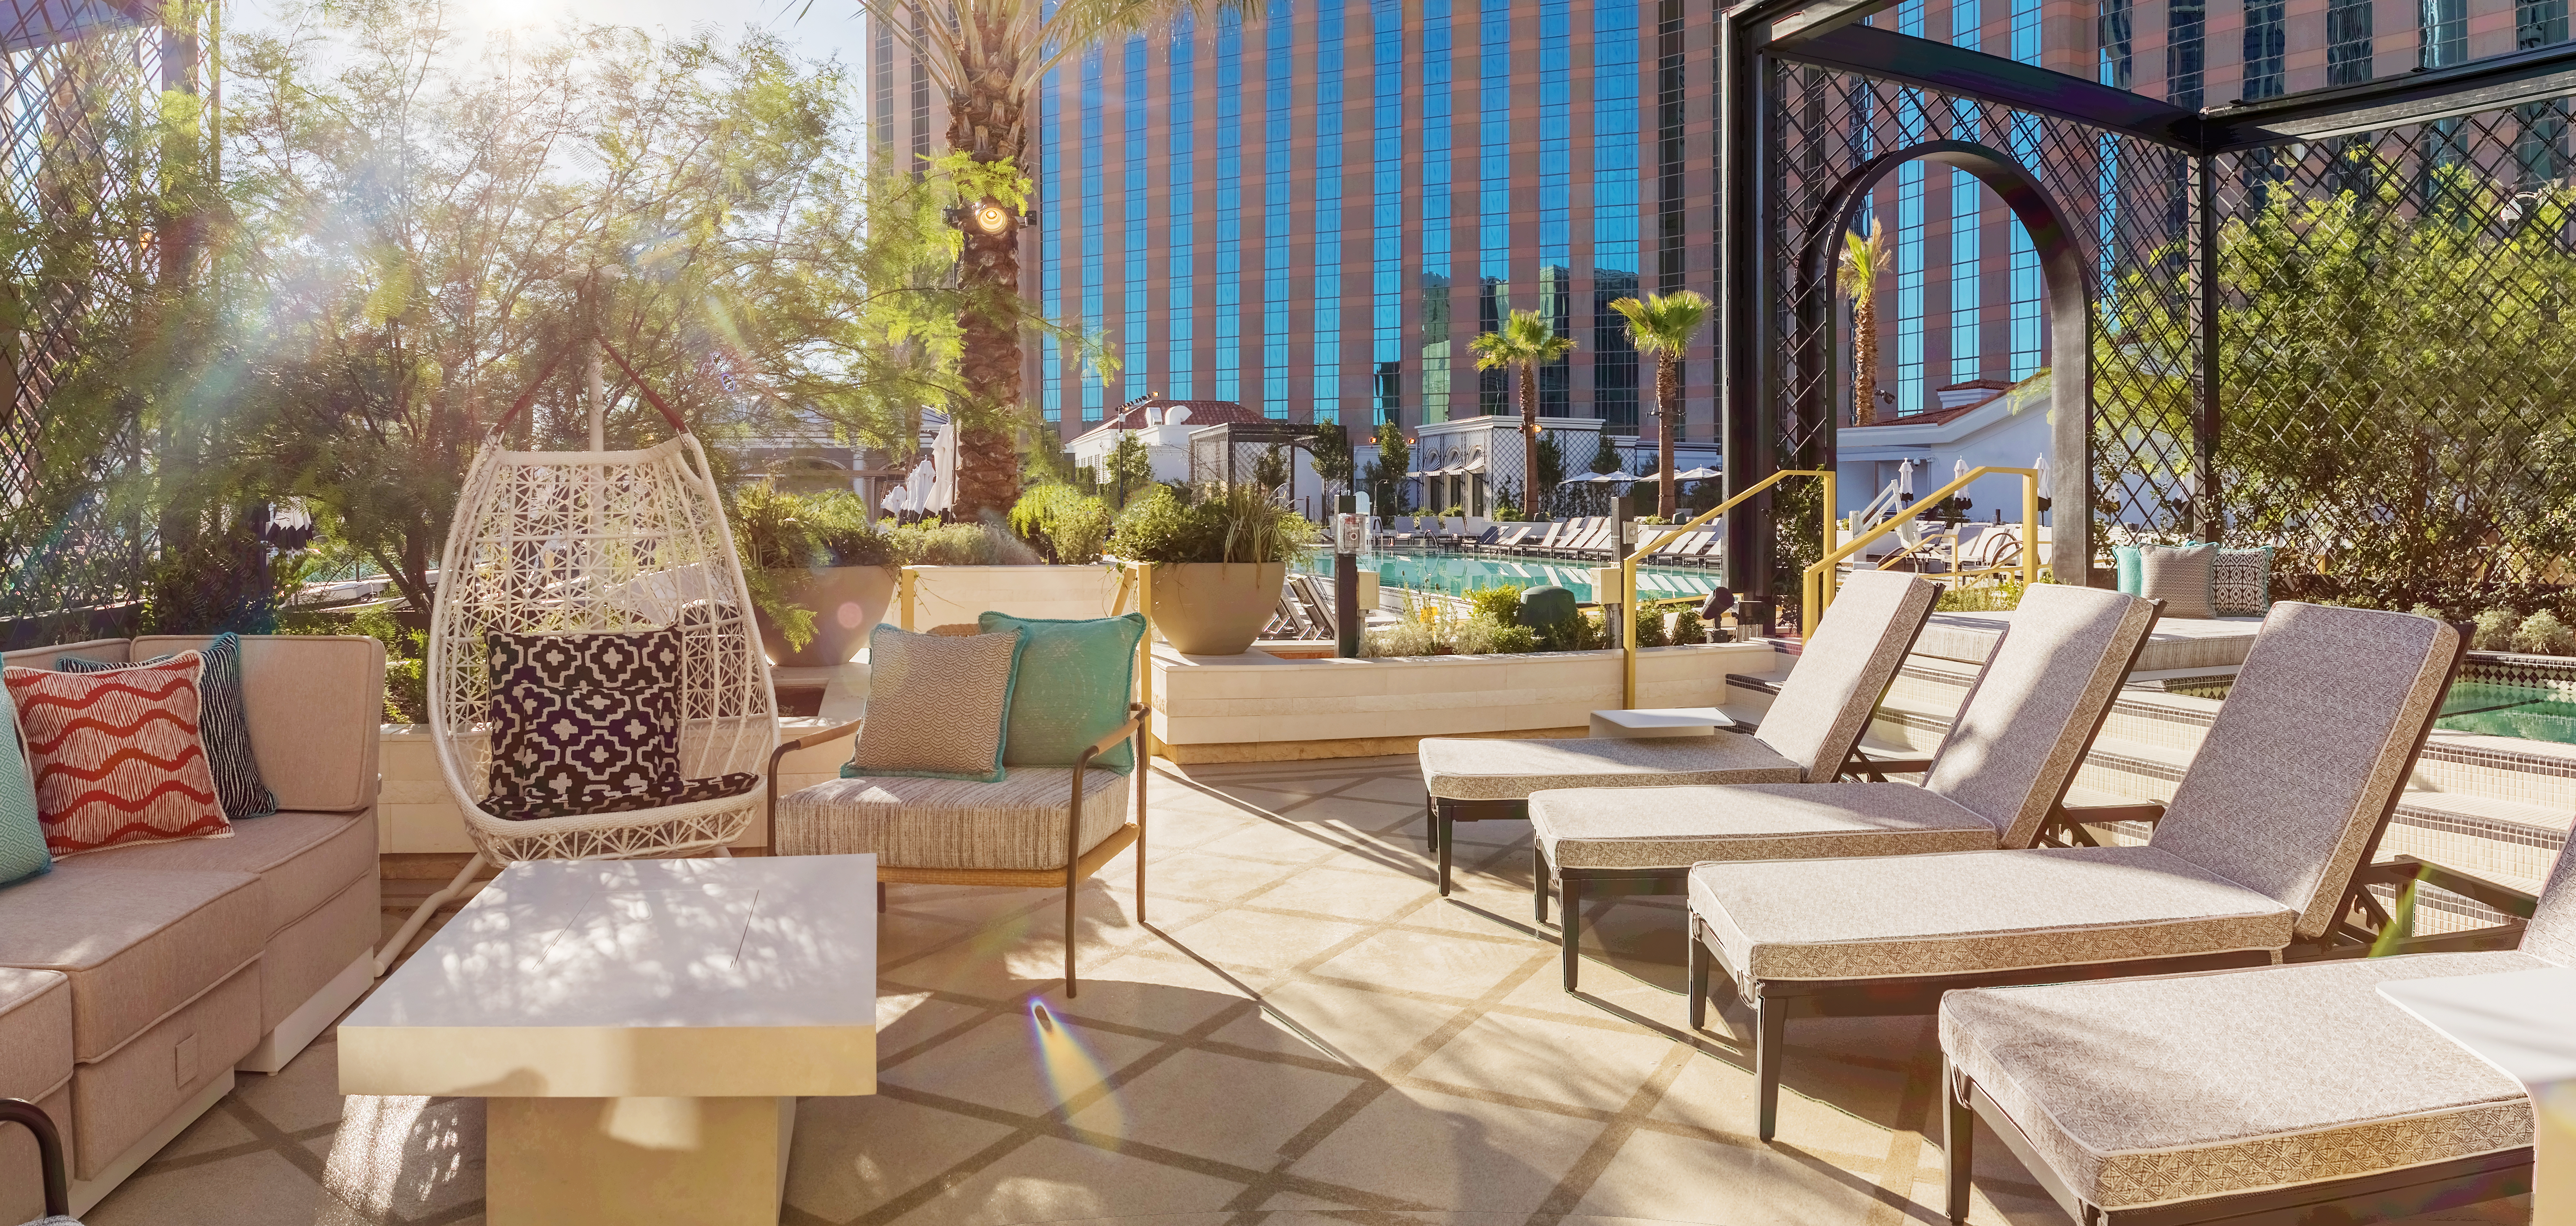 Chaise lounges sit in front of a pool with a hotel in the background